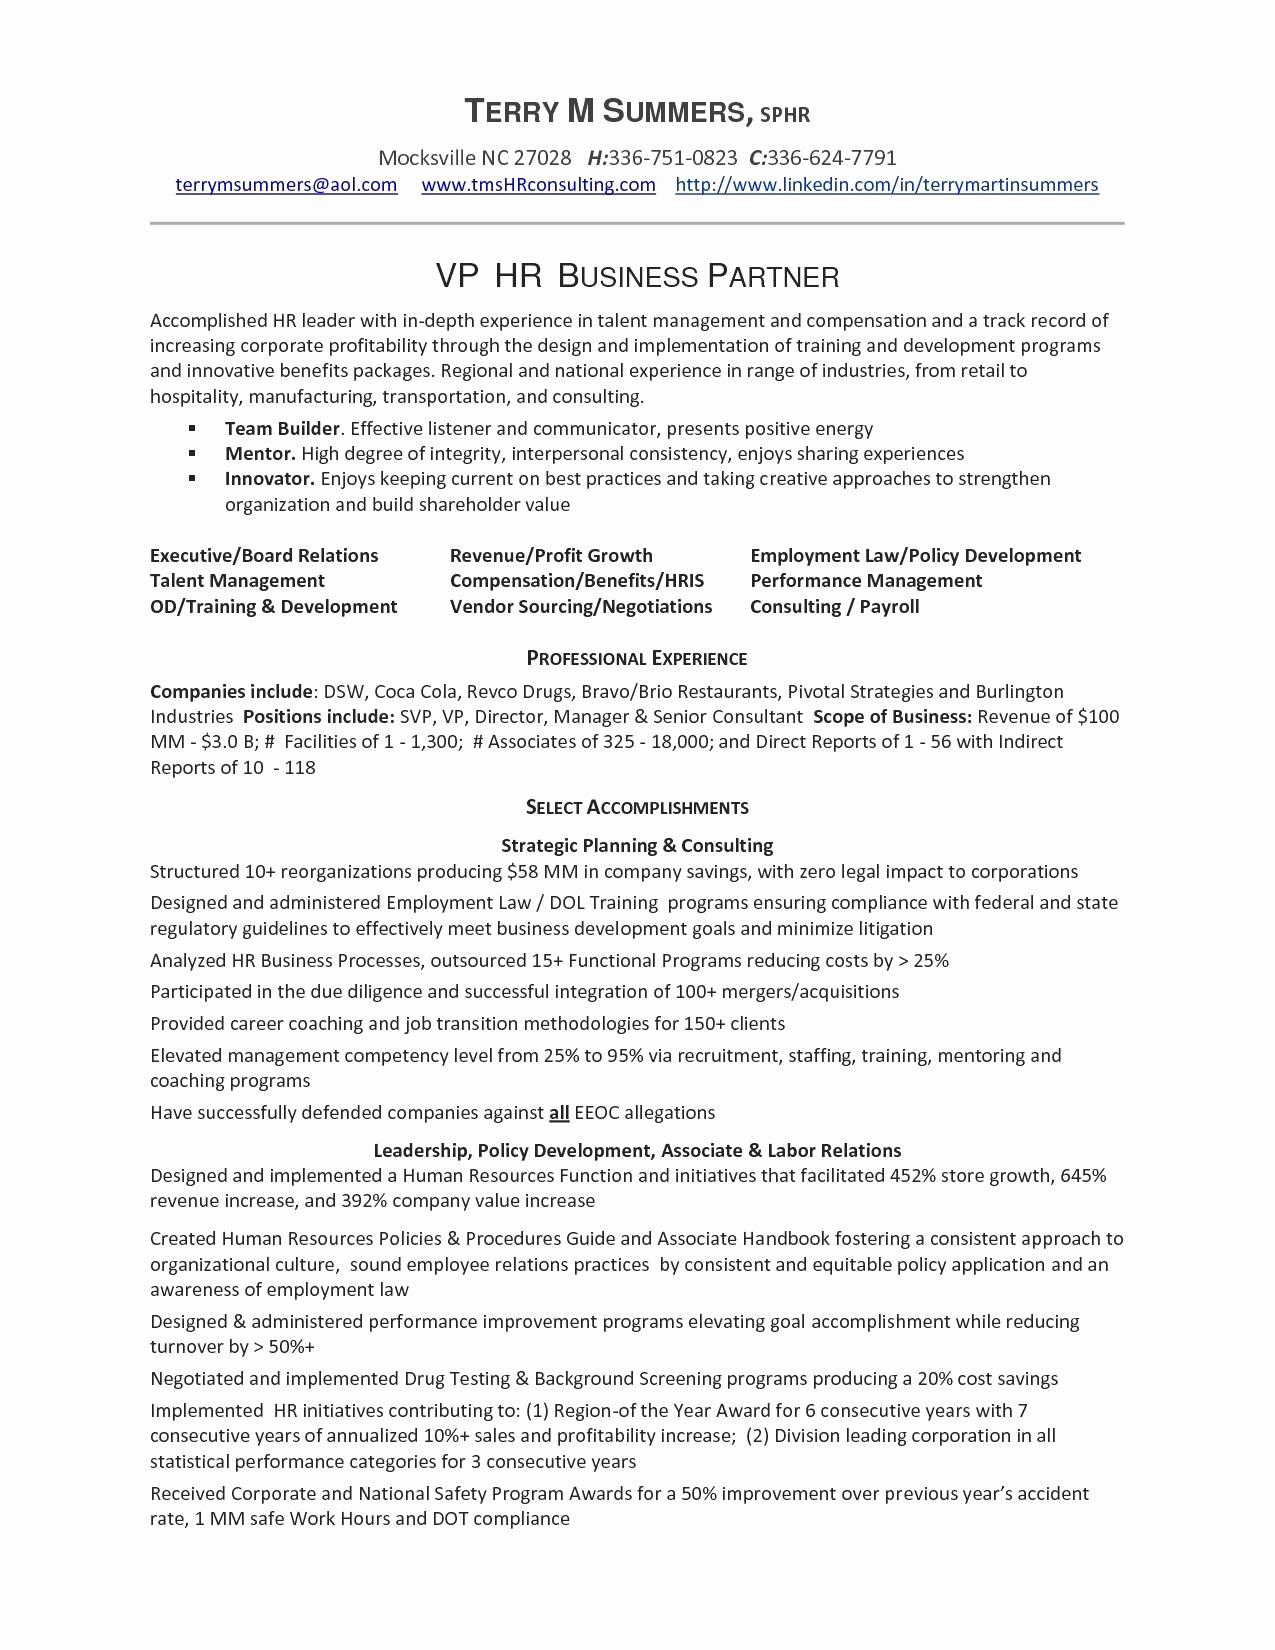 House Cleaning Resume Sample - Sample Functional Resume Unique Resume Samples for Cleaning Job Best